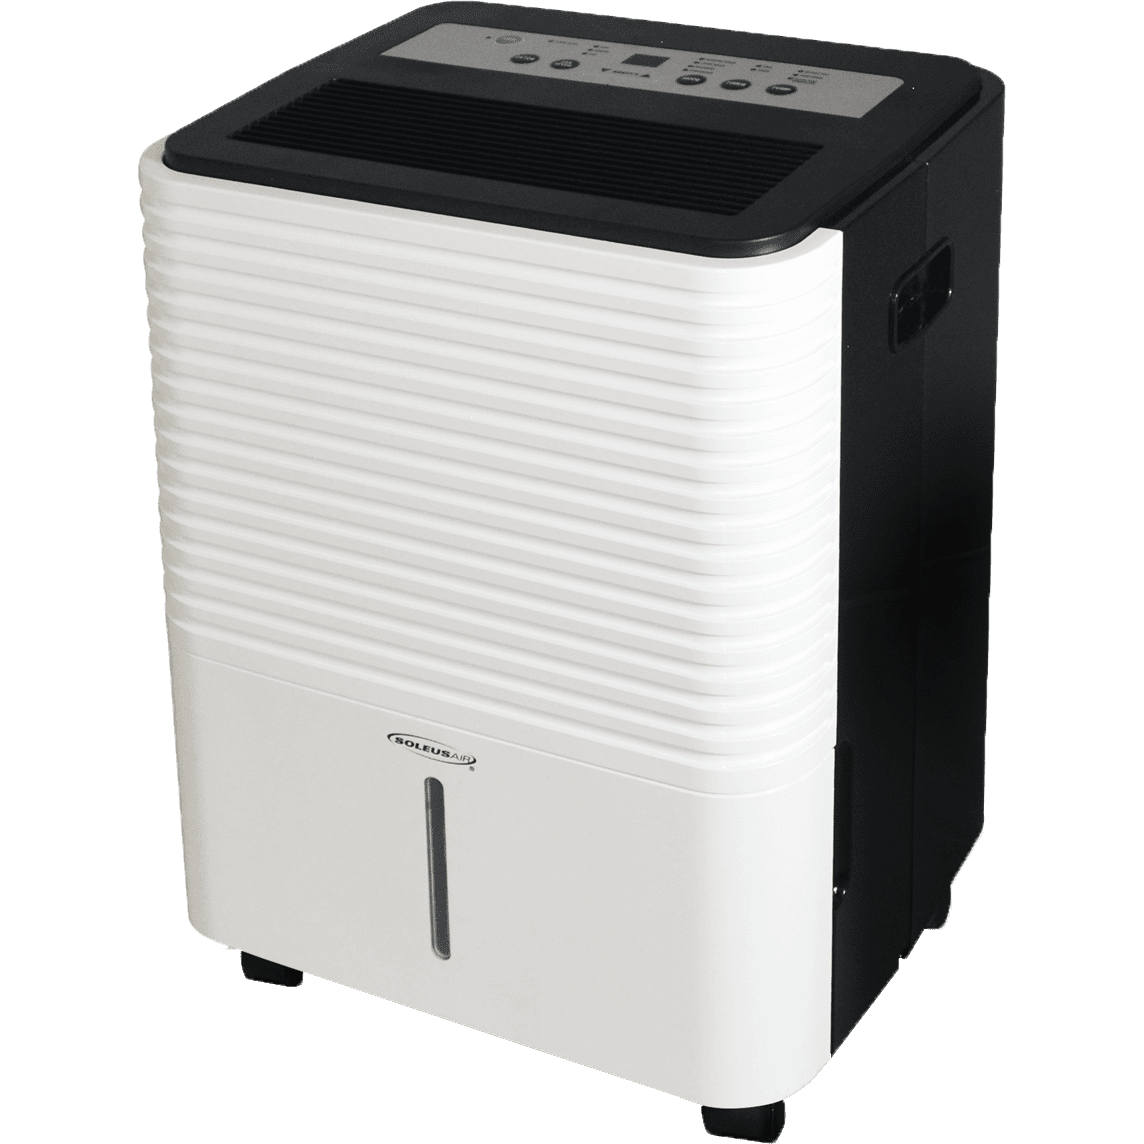 Soleus Air 95 Pint Dehumidifier W